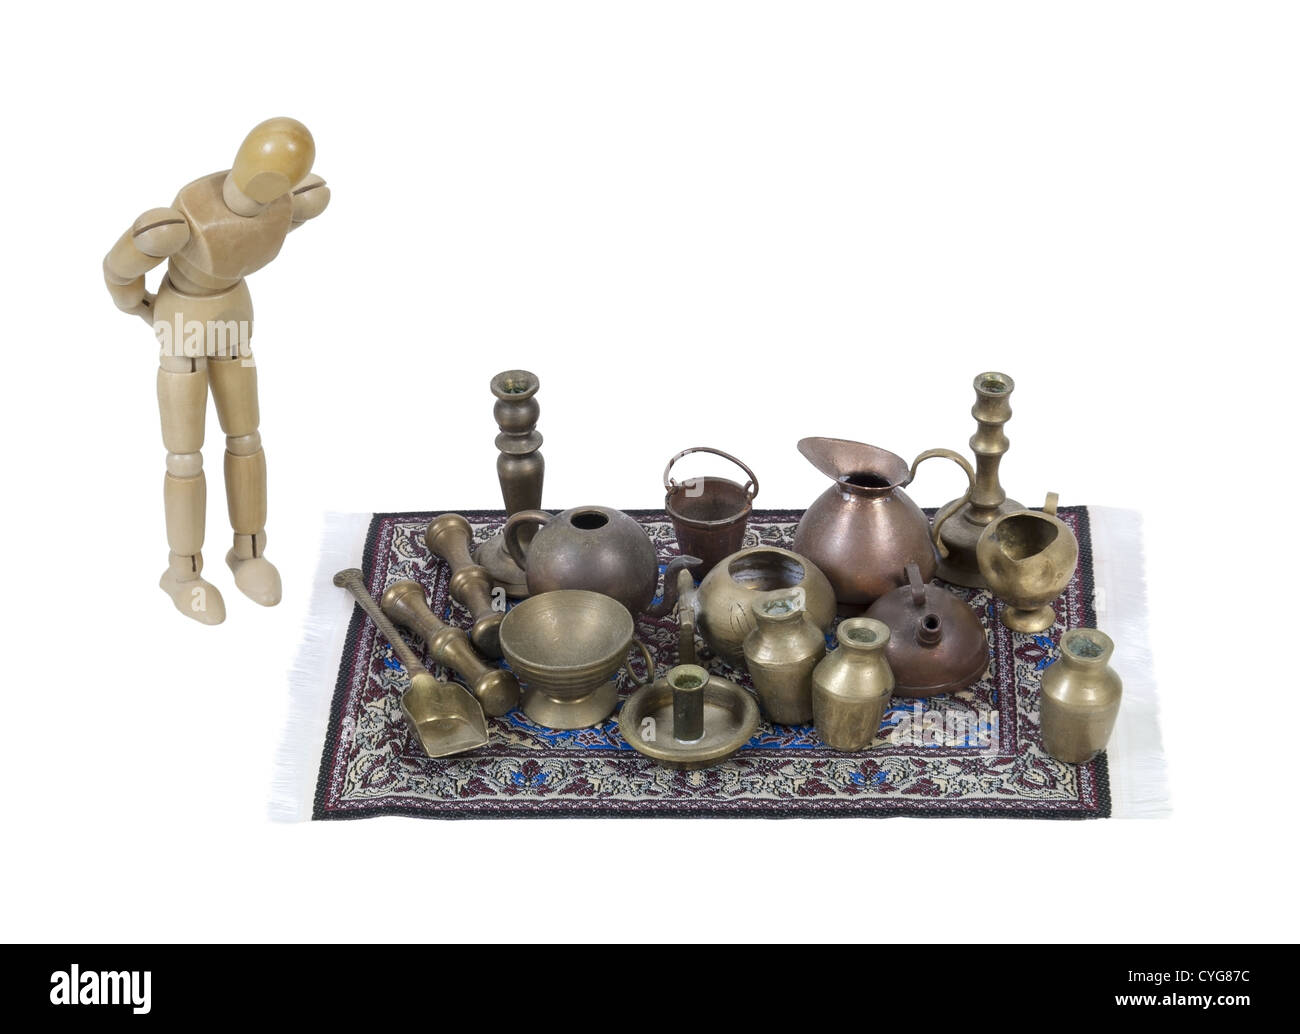 Shopping through a variety of different junk items on an intricate rug - path included - Stock Image